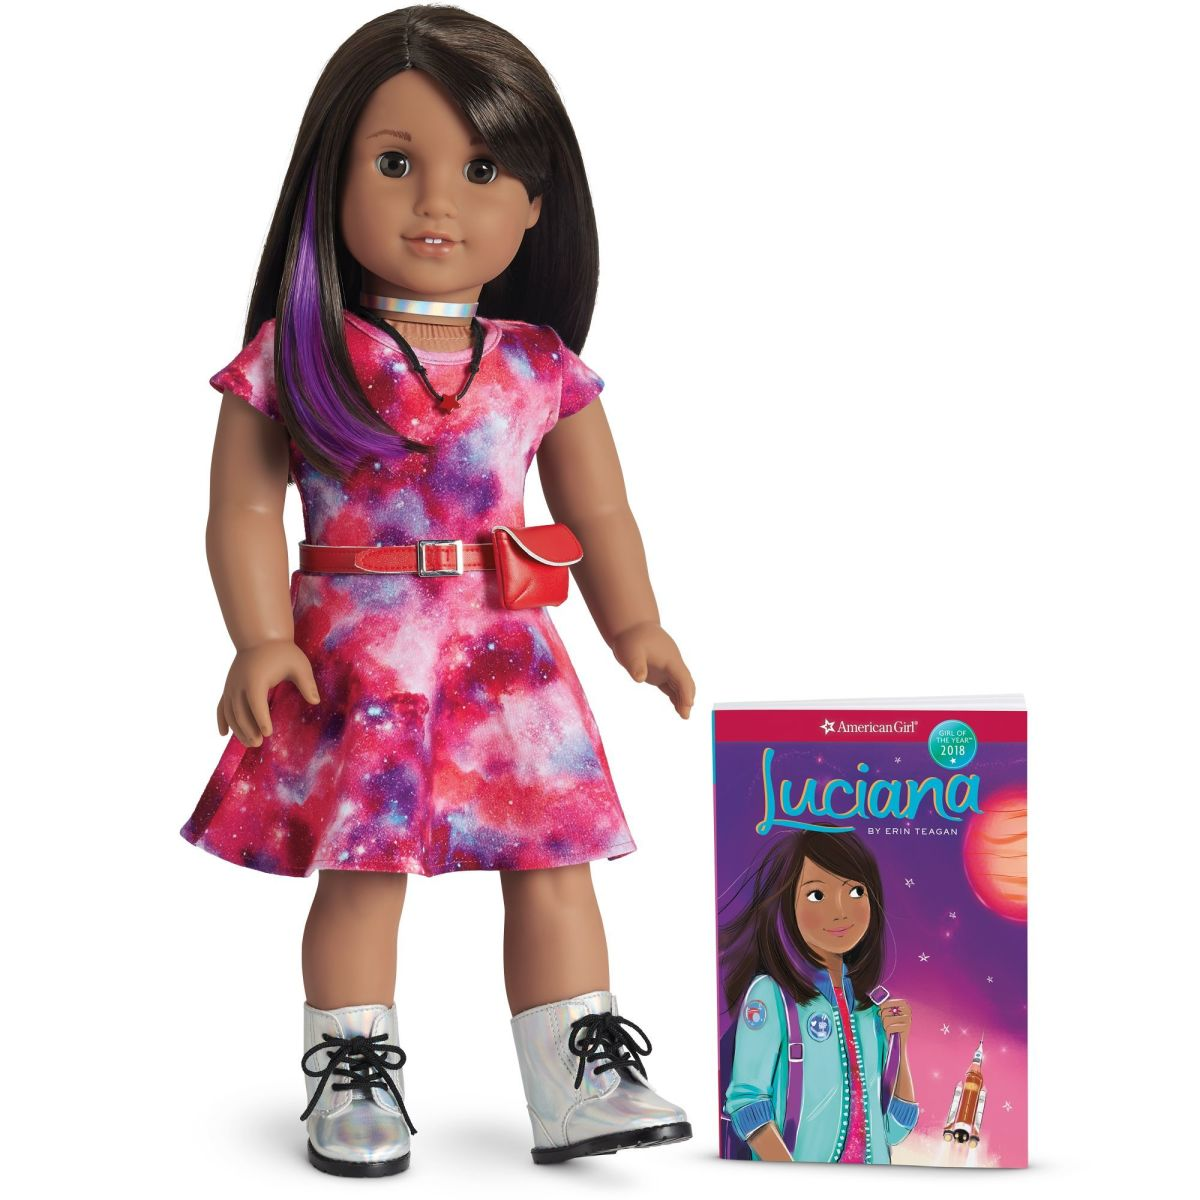 Luciana, the 2018 Girl of the Year